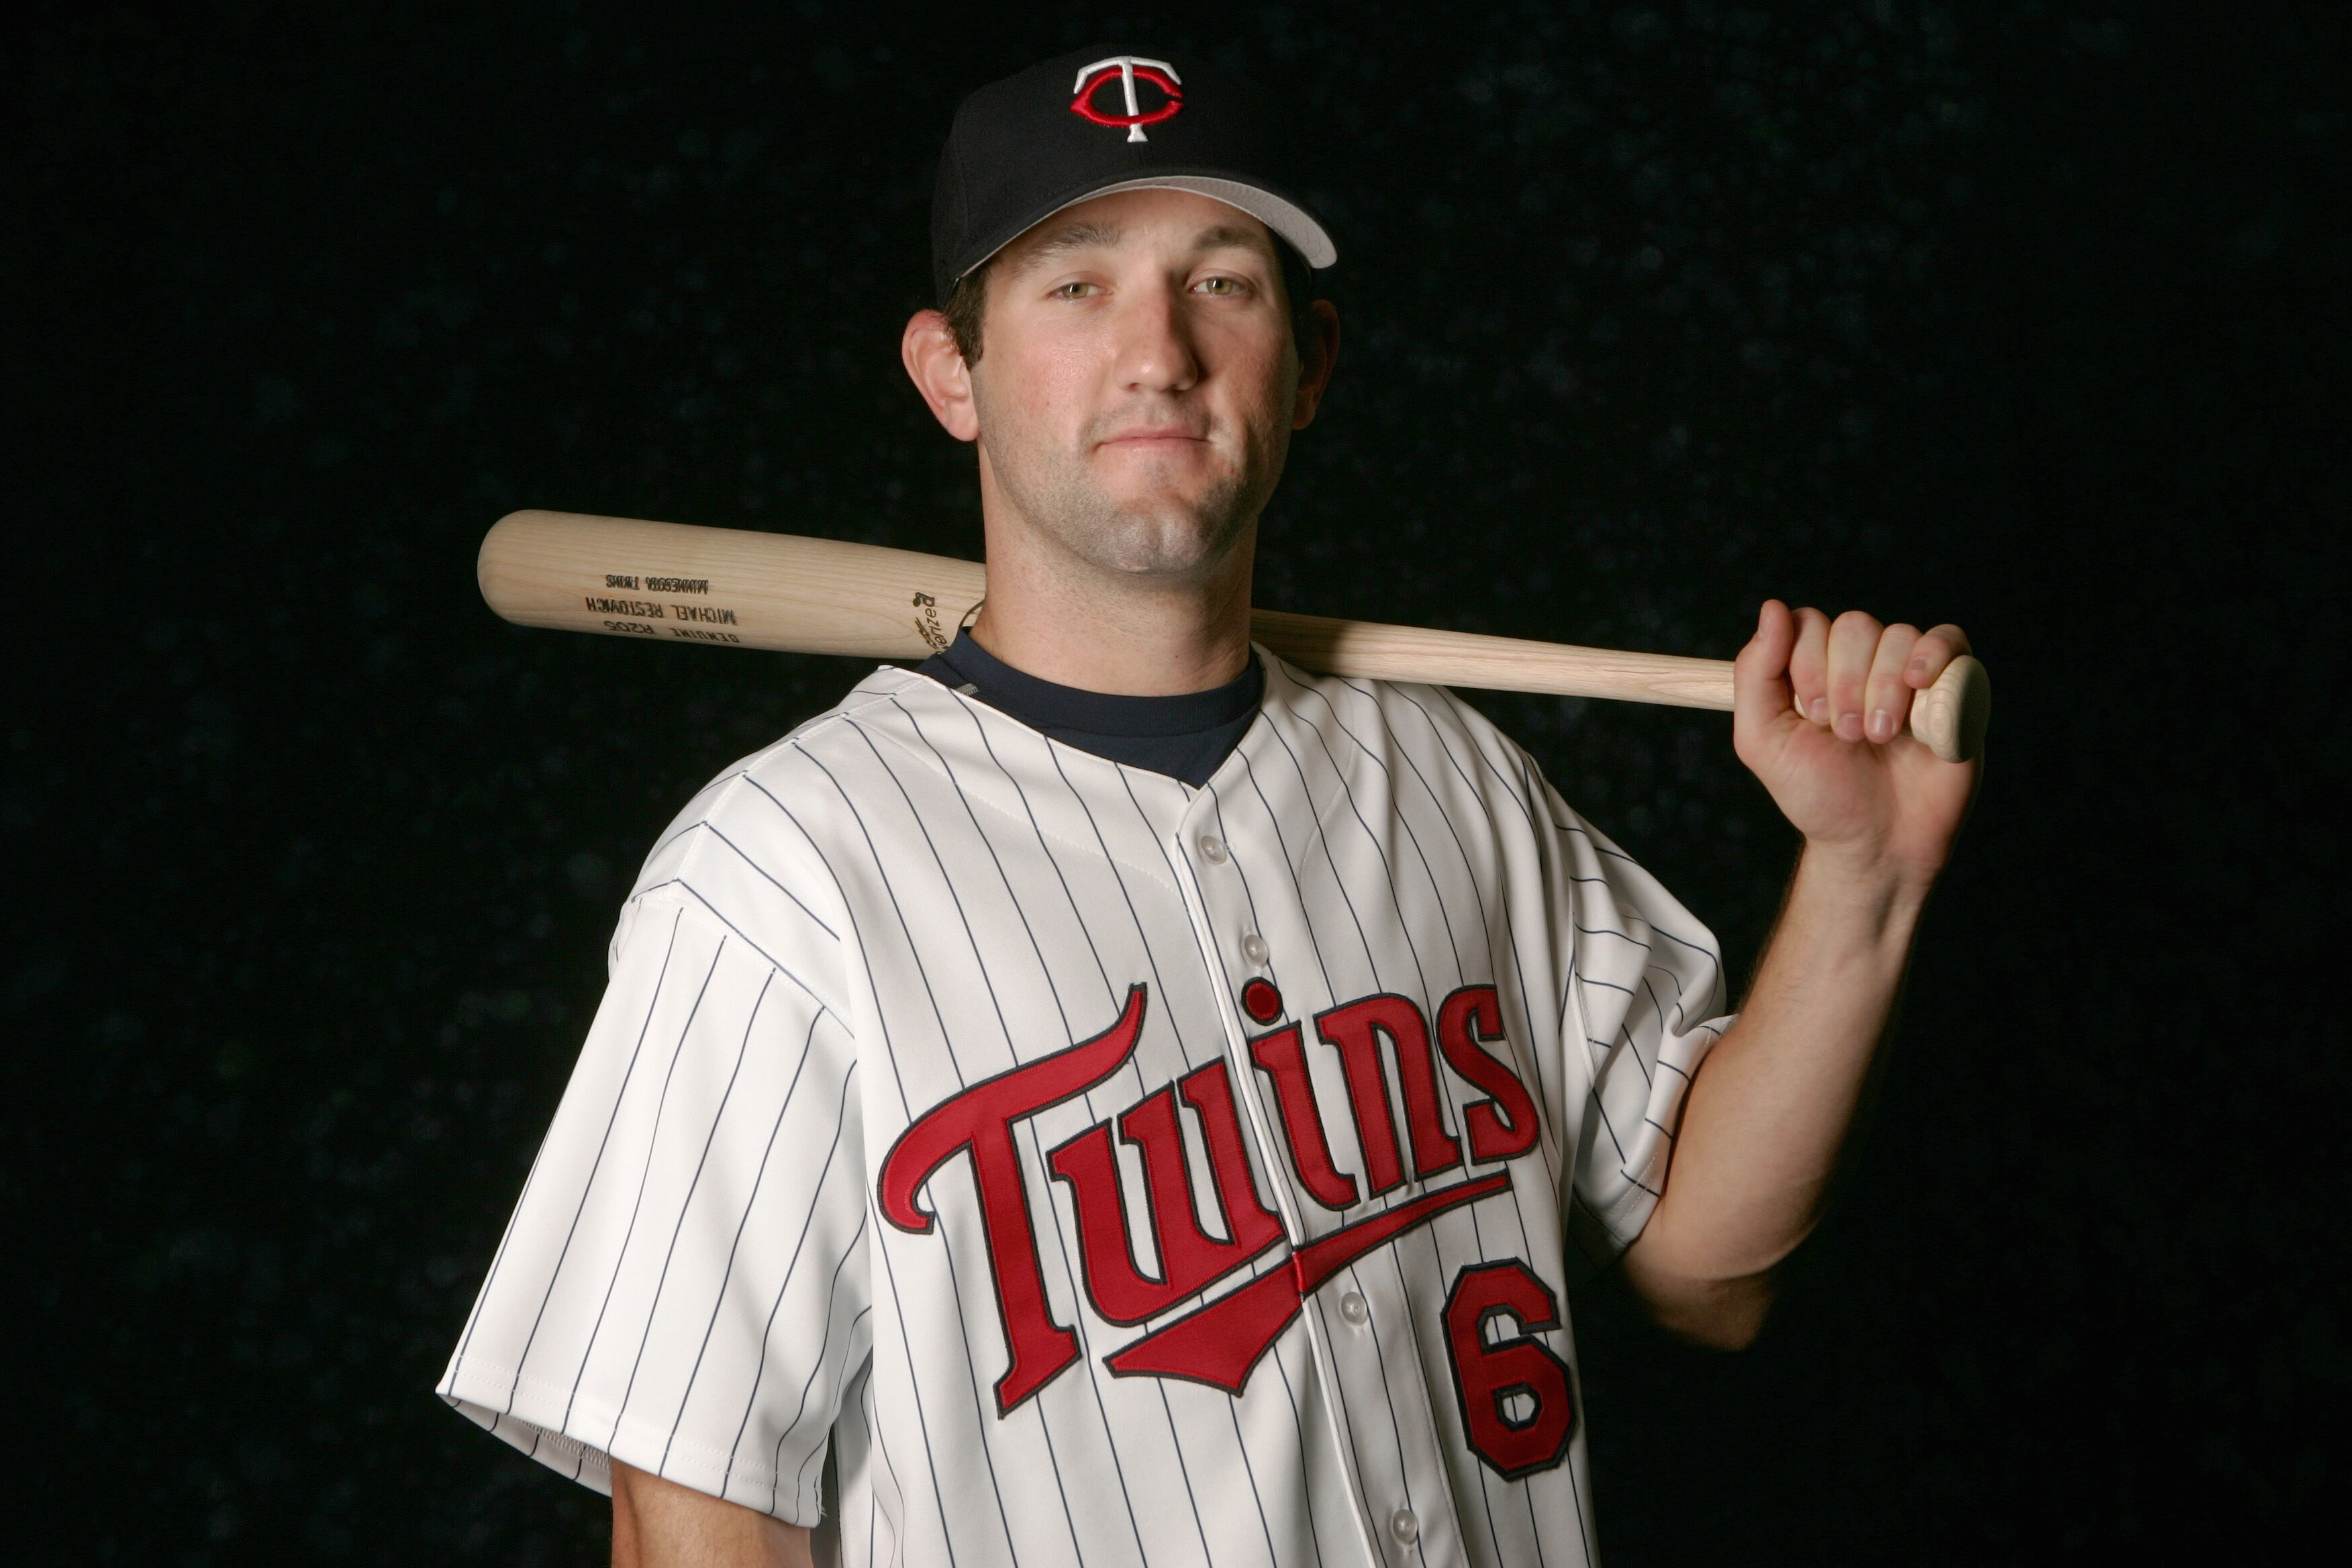 56982102-minnesota-twins-photo-day.jpg